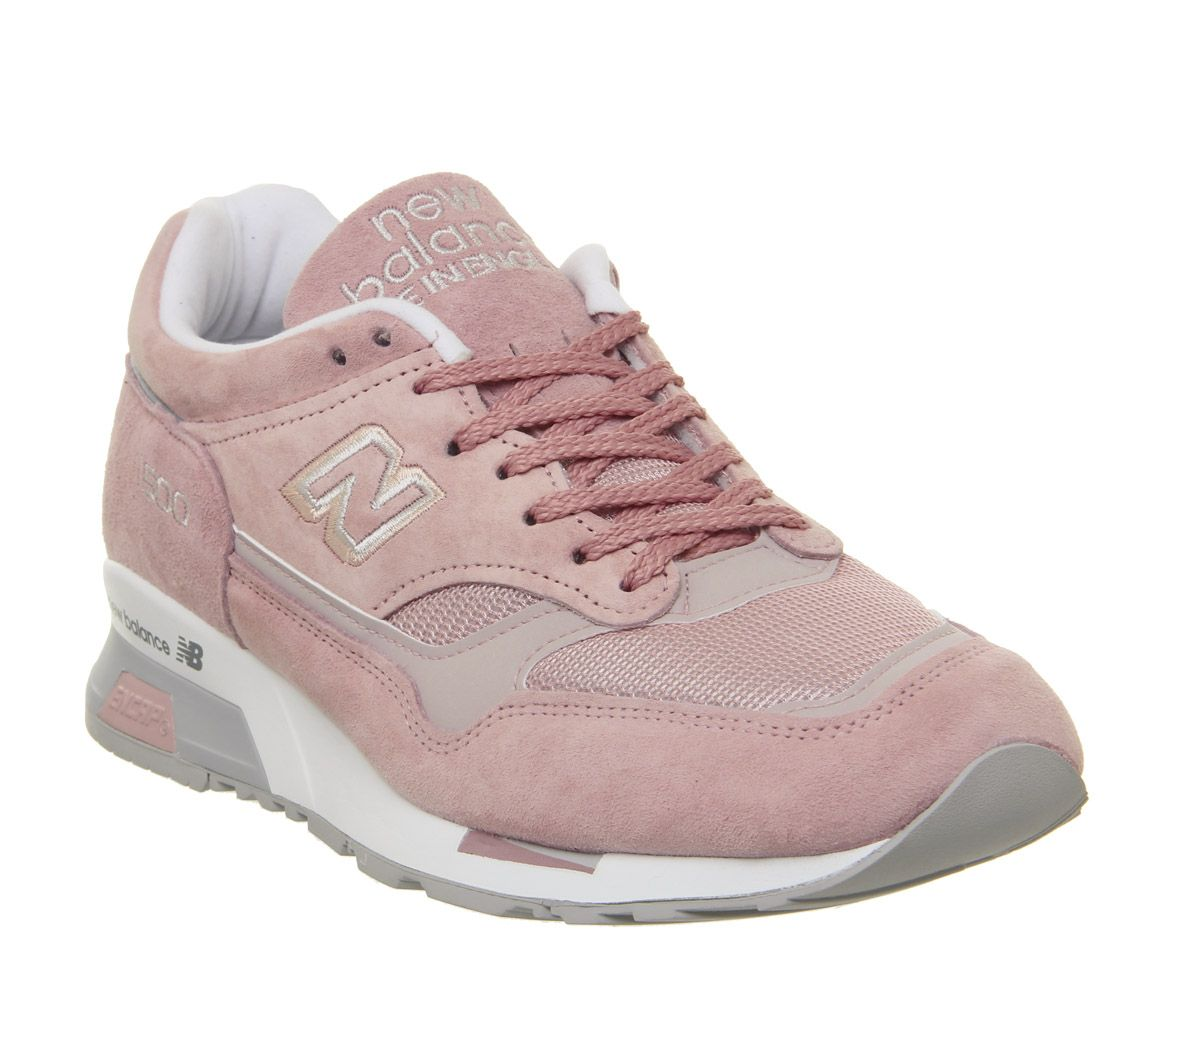 buy popular 7b420 a116d New Balance M1500 Trainers Miuk Pink Grey - His trainers